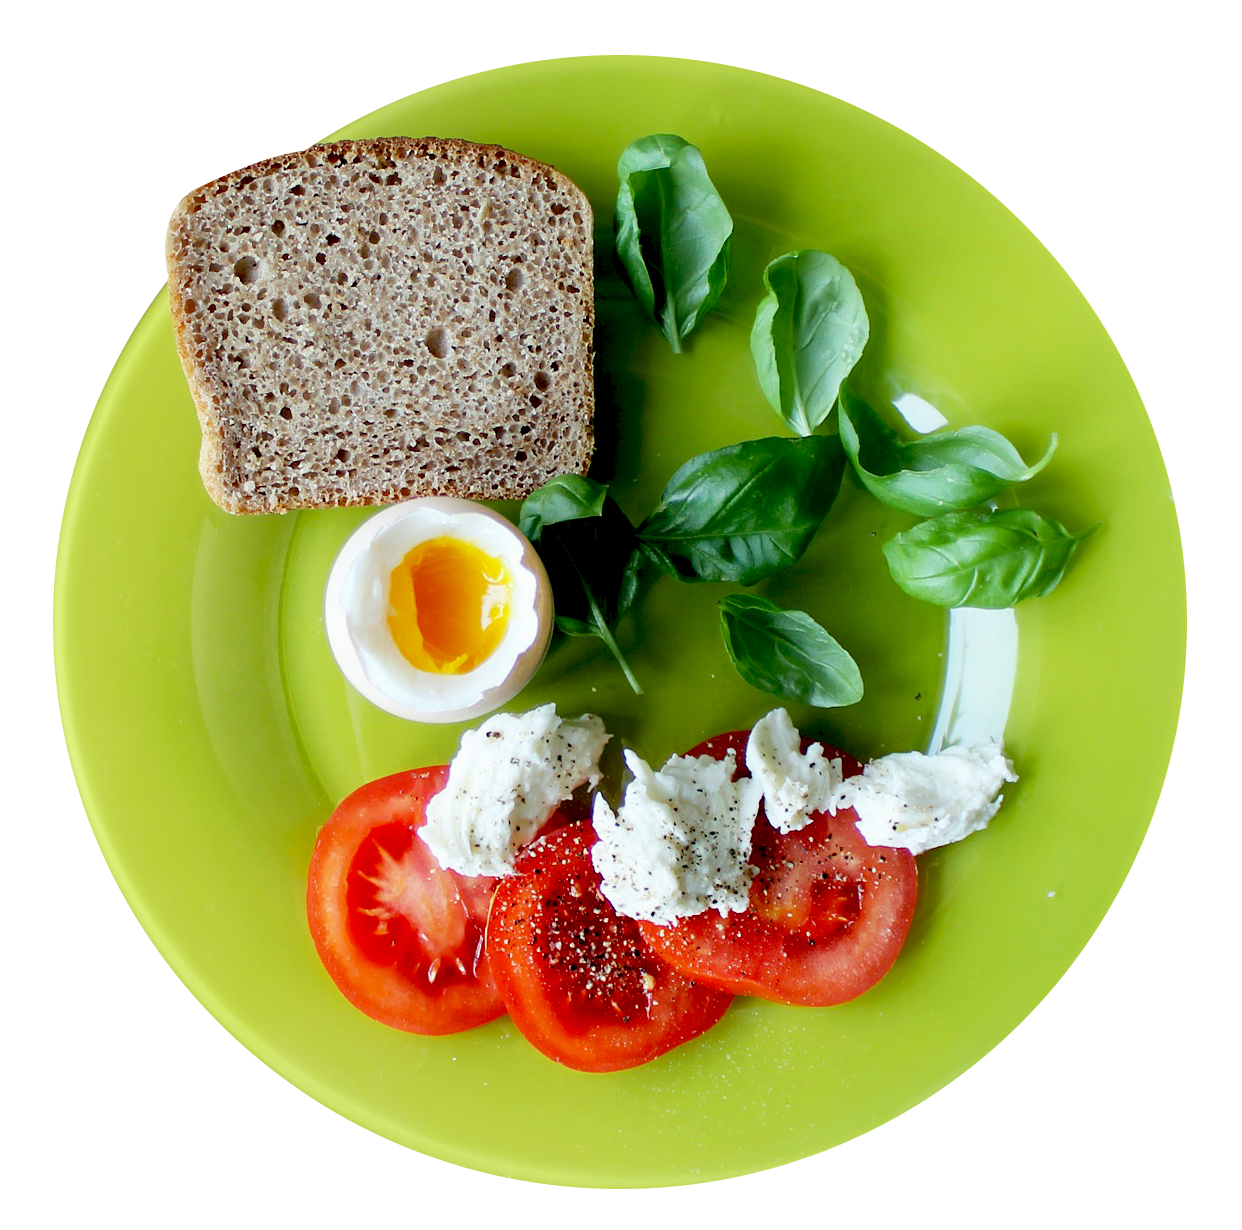 Food Plate Top View PNG Image.